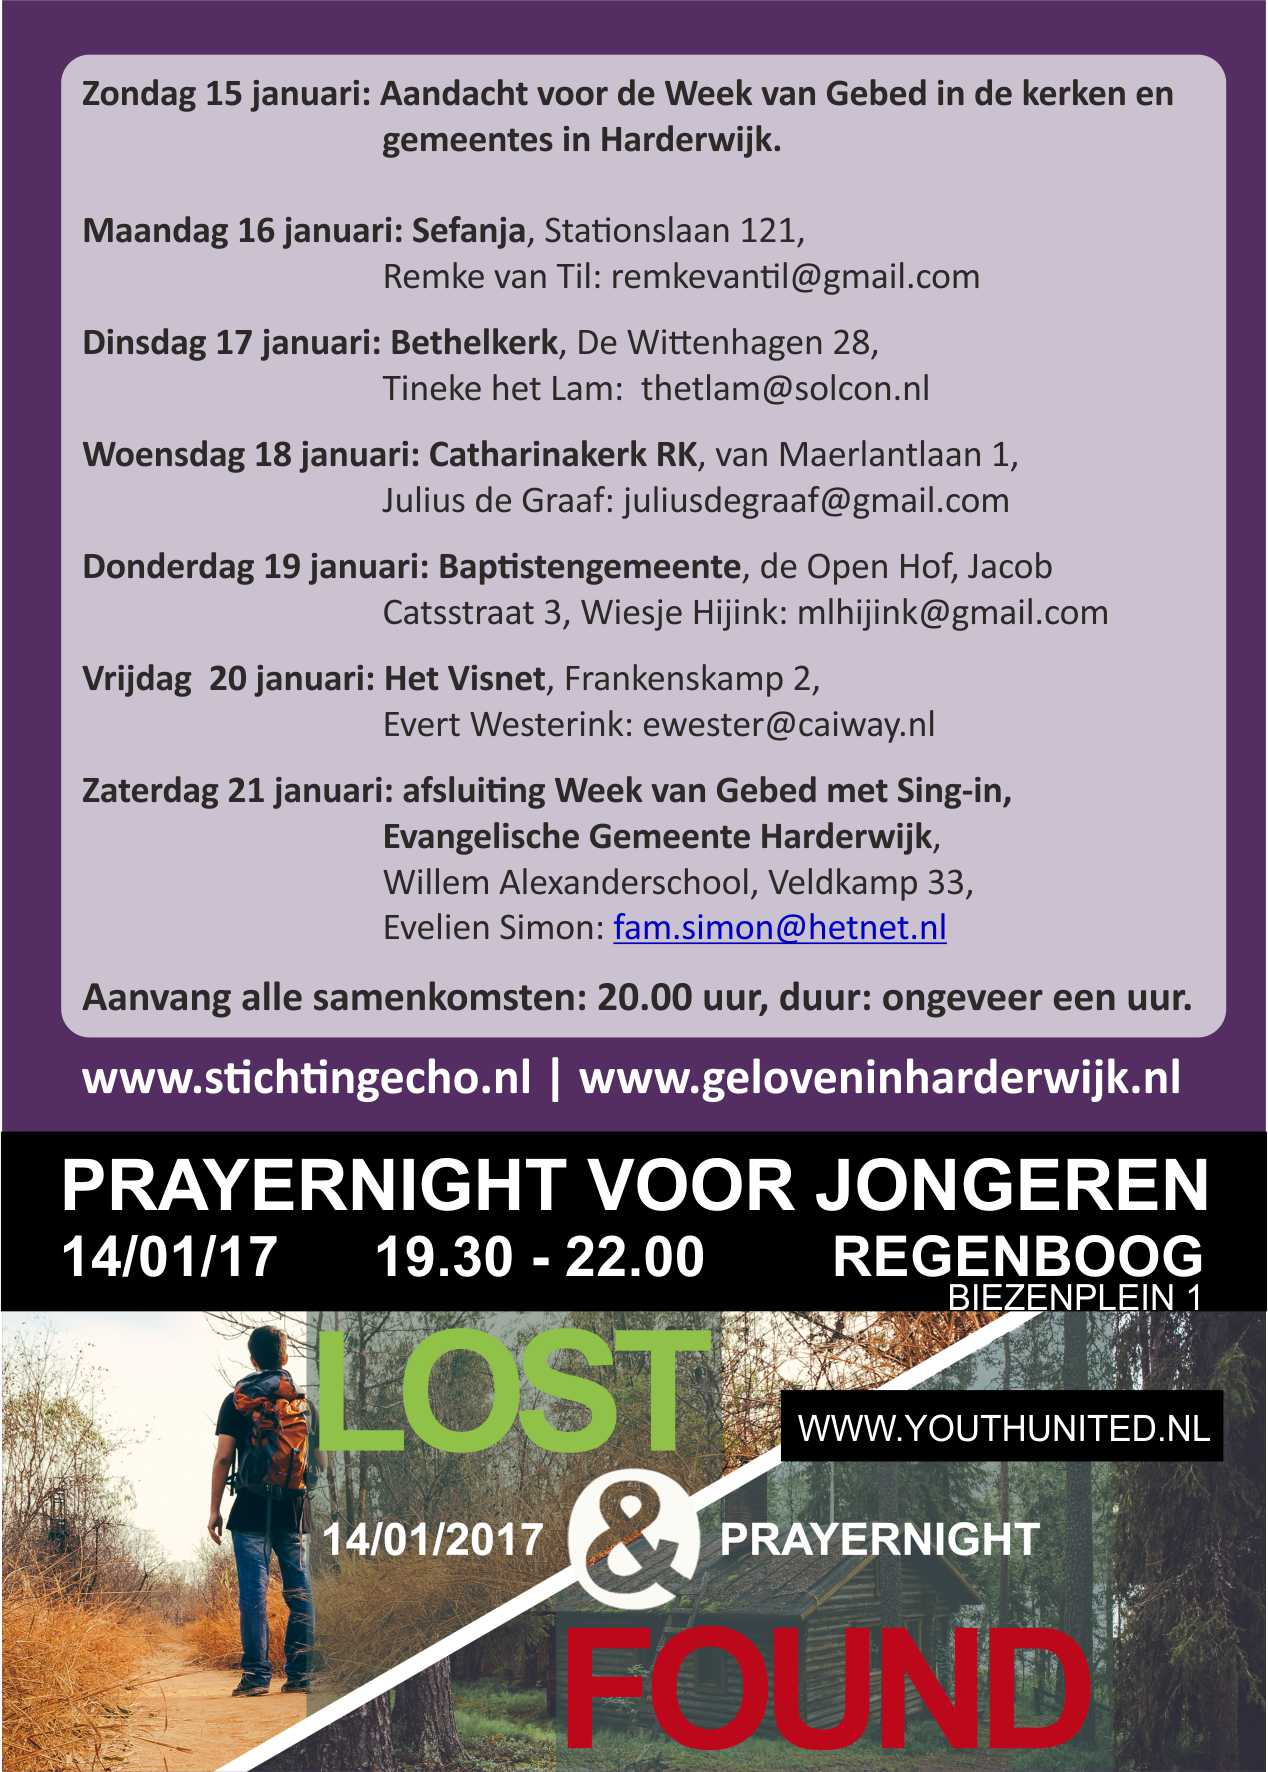 weekvgebed-2017-achter-mq